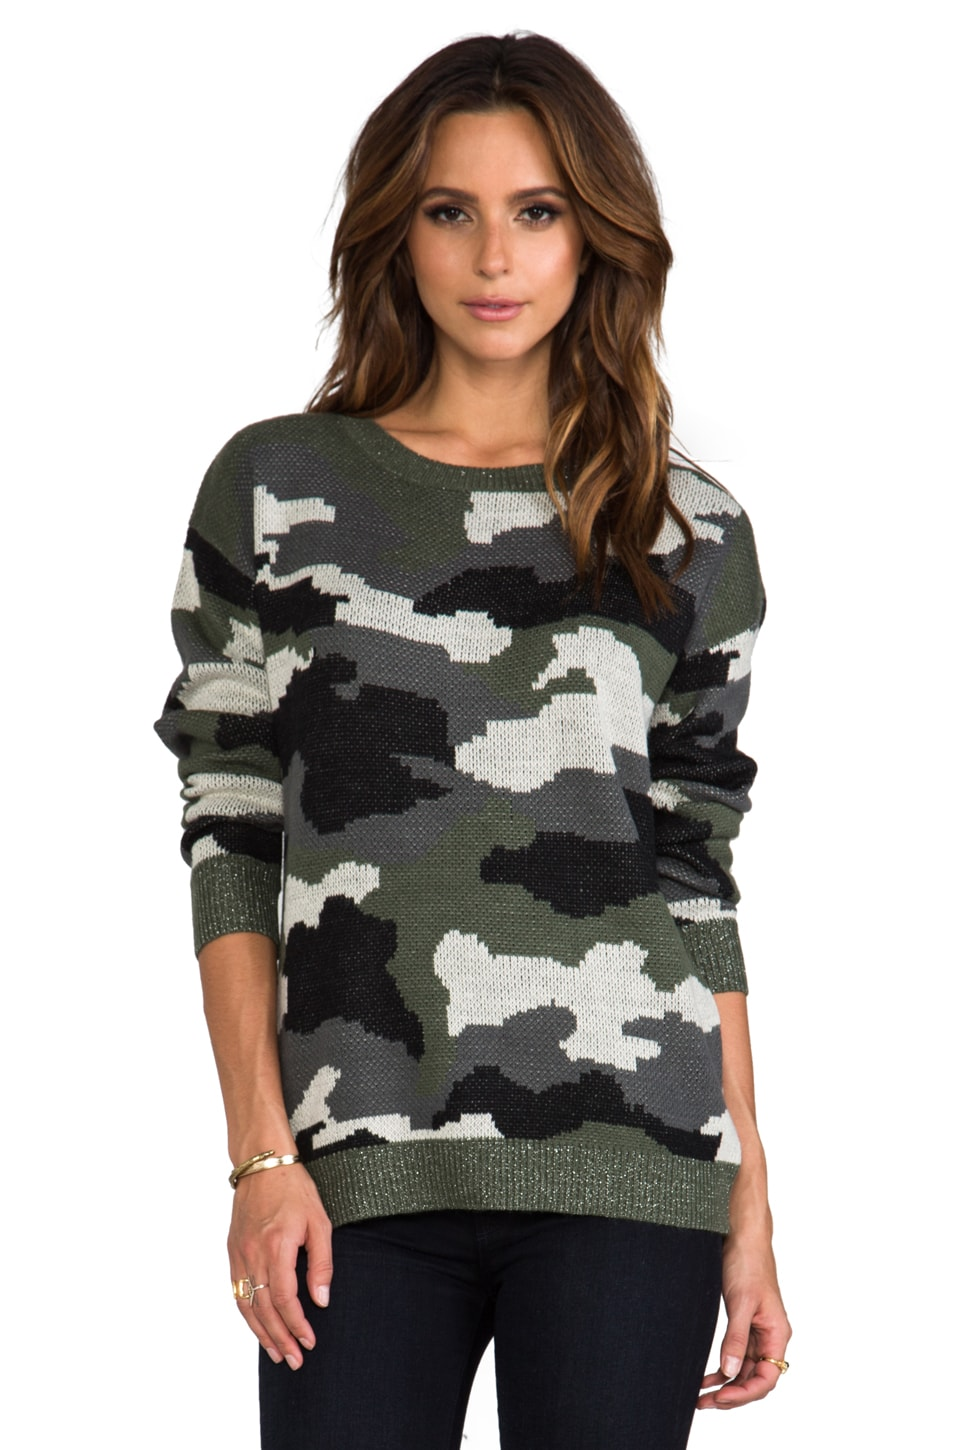 BB Dakota Ace Camo Sweater in Military Green